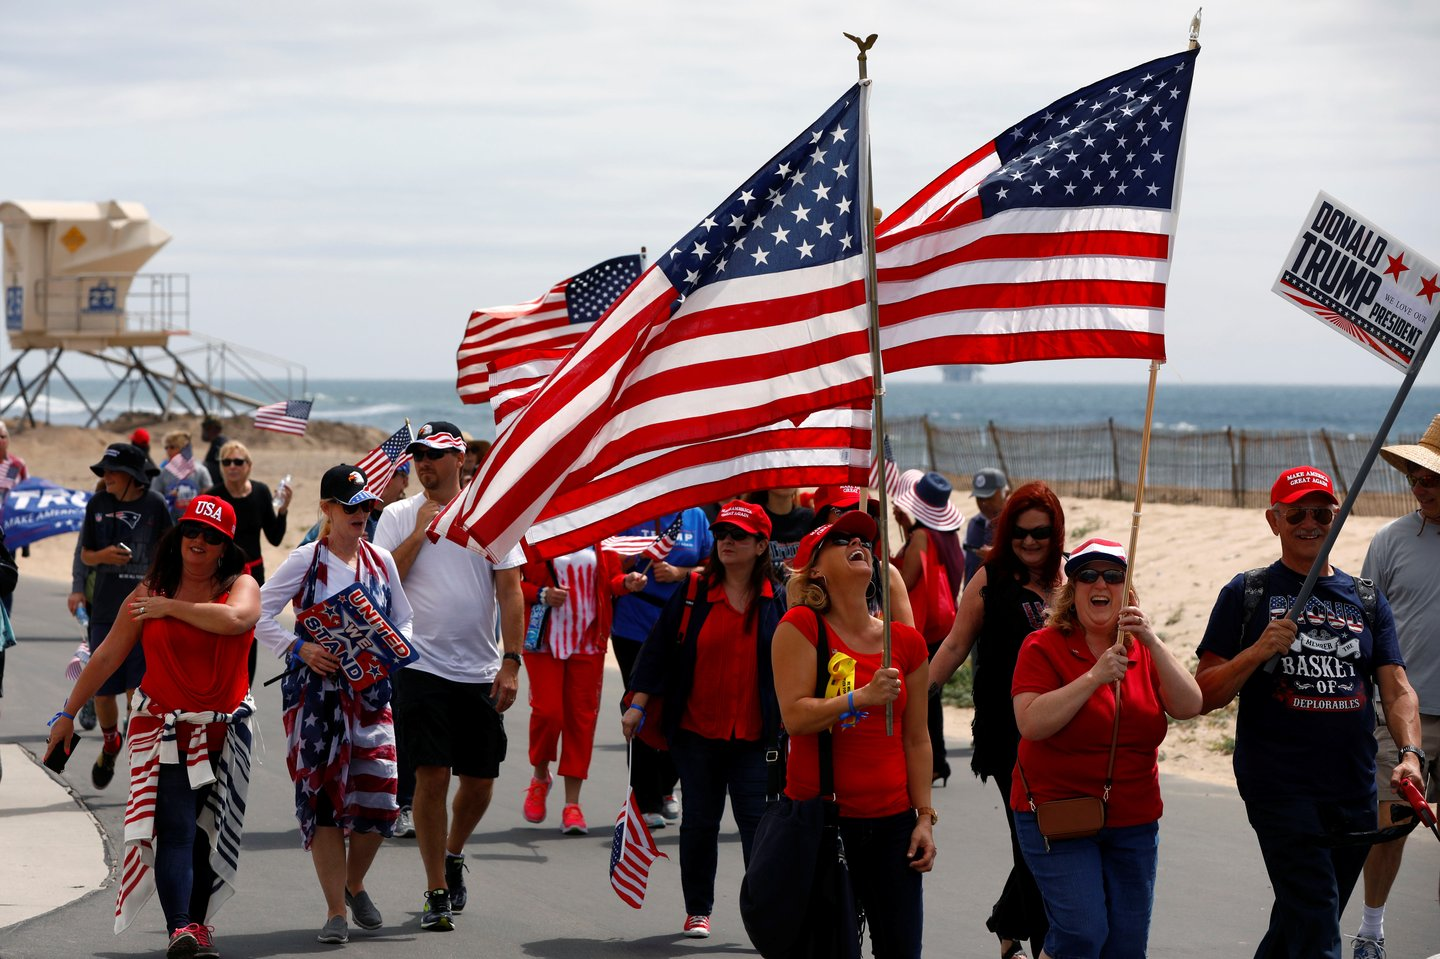 Pro-Trump rally participants carry flags during the Southern California Make America Great Again march in support of President Trump, the military and first responders at Bolsa Chica State Beach in Huntington Beach, California, U.S. March 25, 2017.